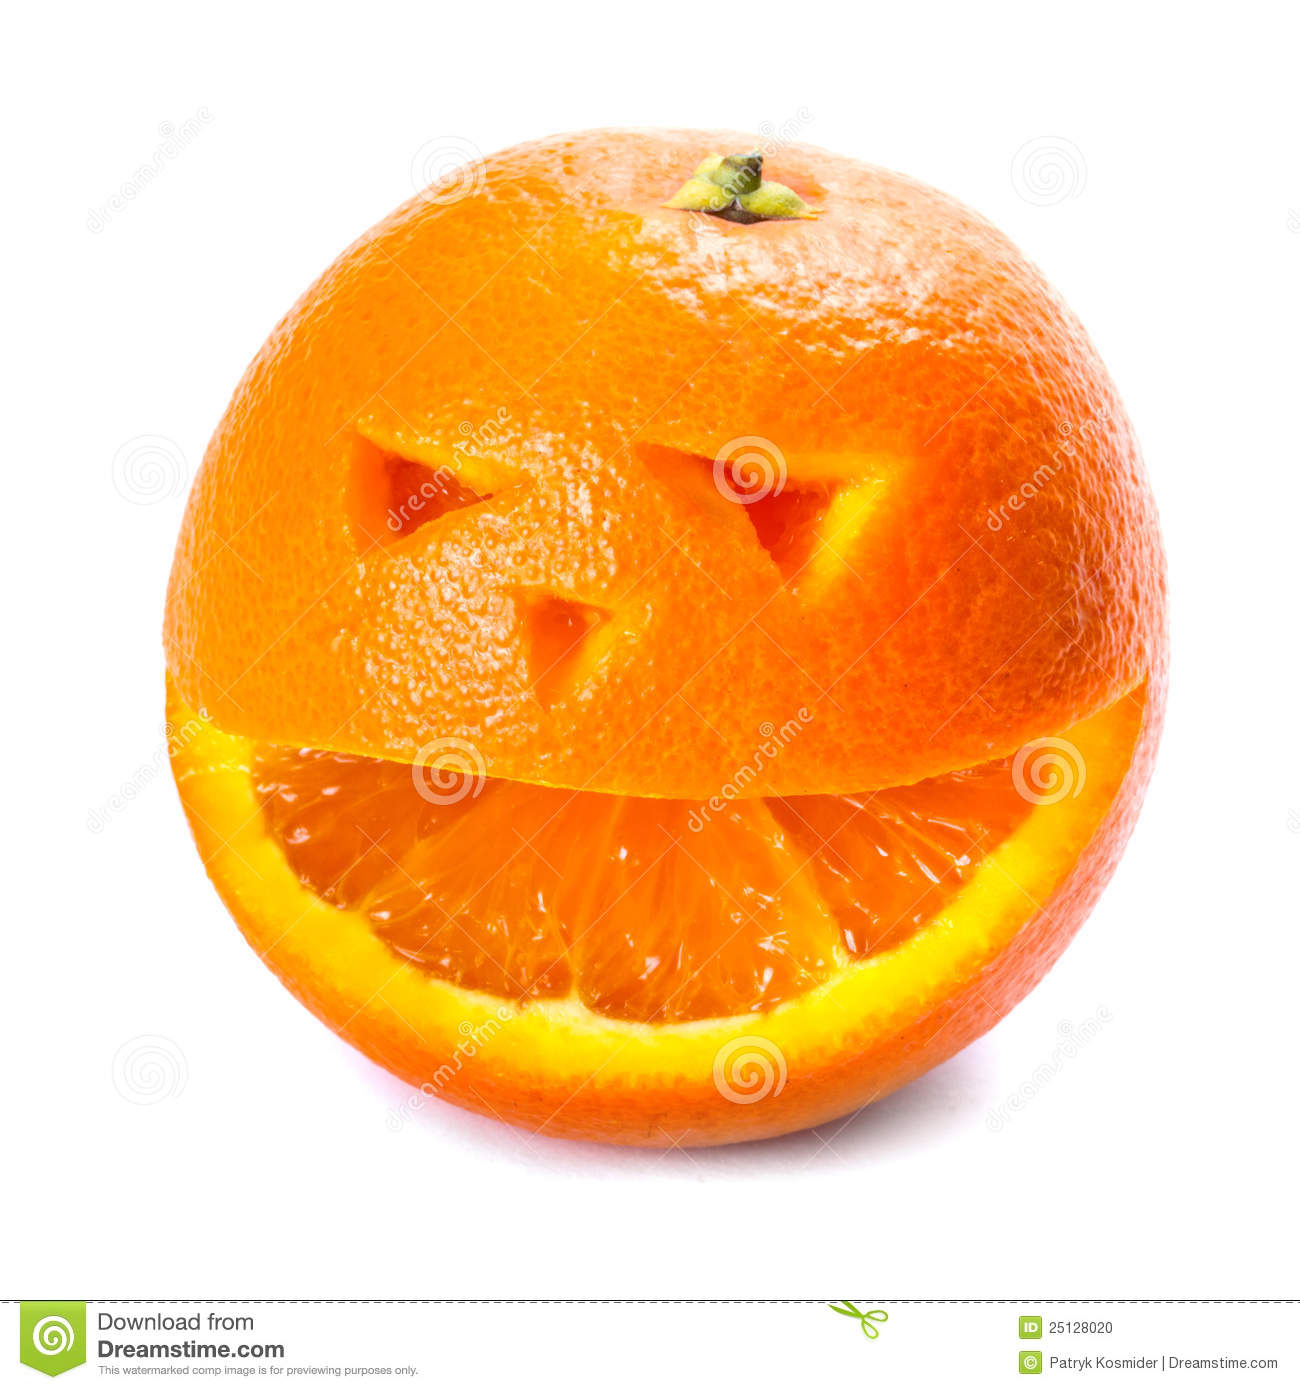 orange-smiley-face-25128020.jpg